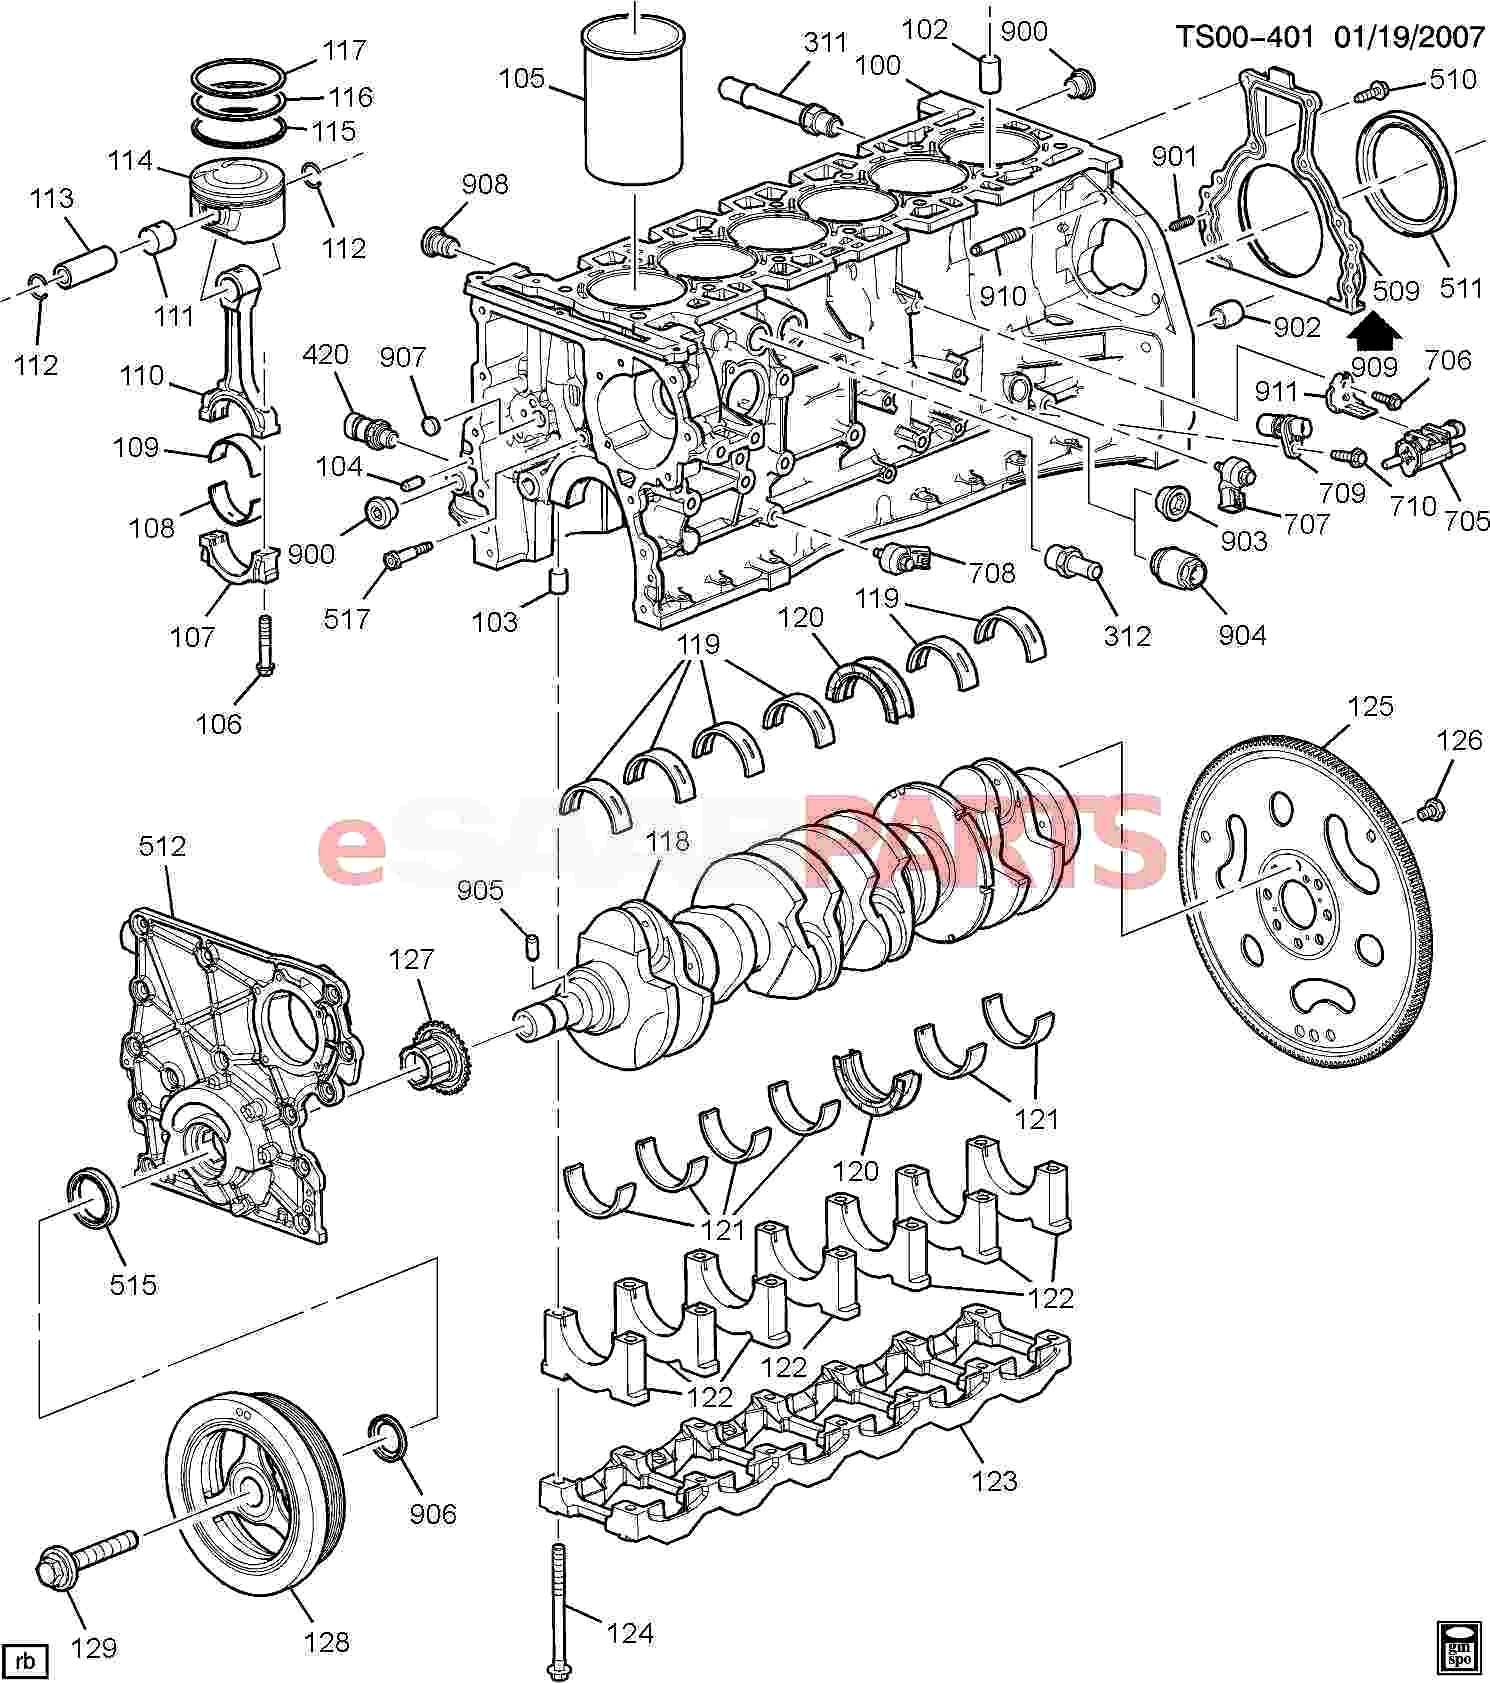 2004 Gmc Yukon Parts Diagram 2018 Chevrolet Performance Parts Catalog Beautiful Chevy Van Parts Of 2004 Gmc Yukon Parts Diagram